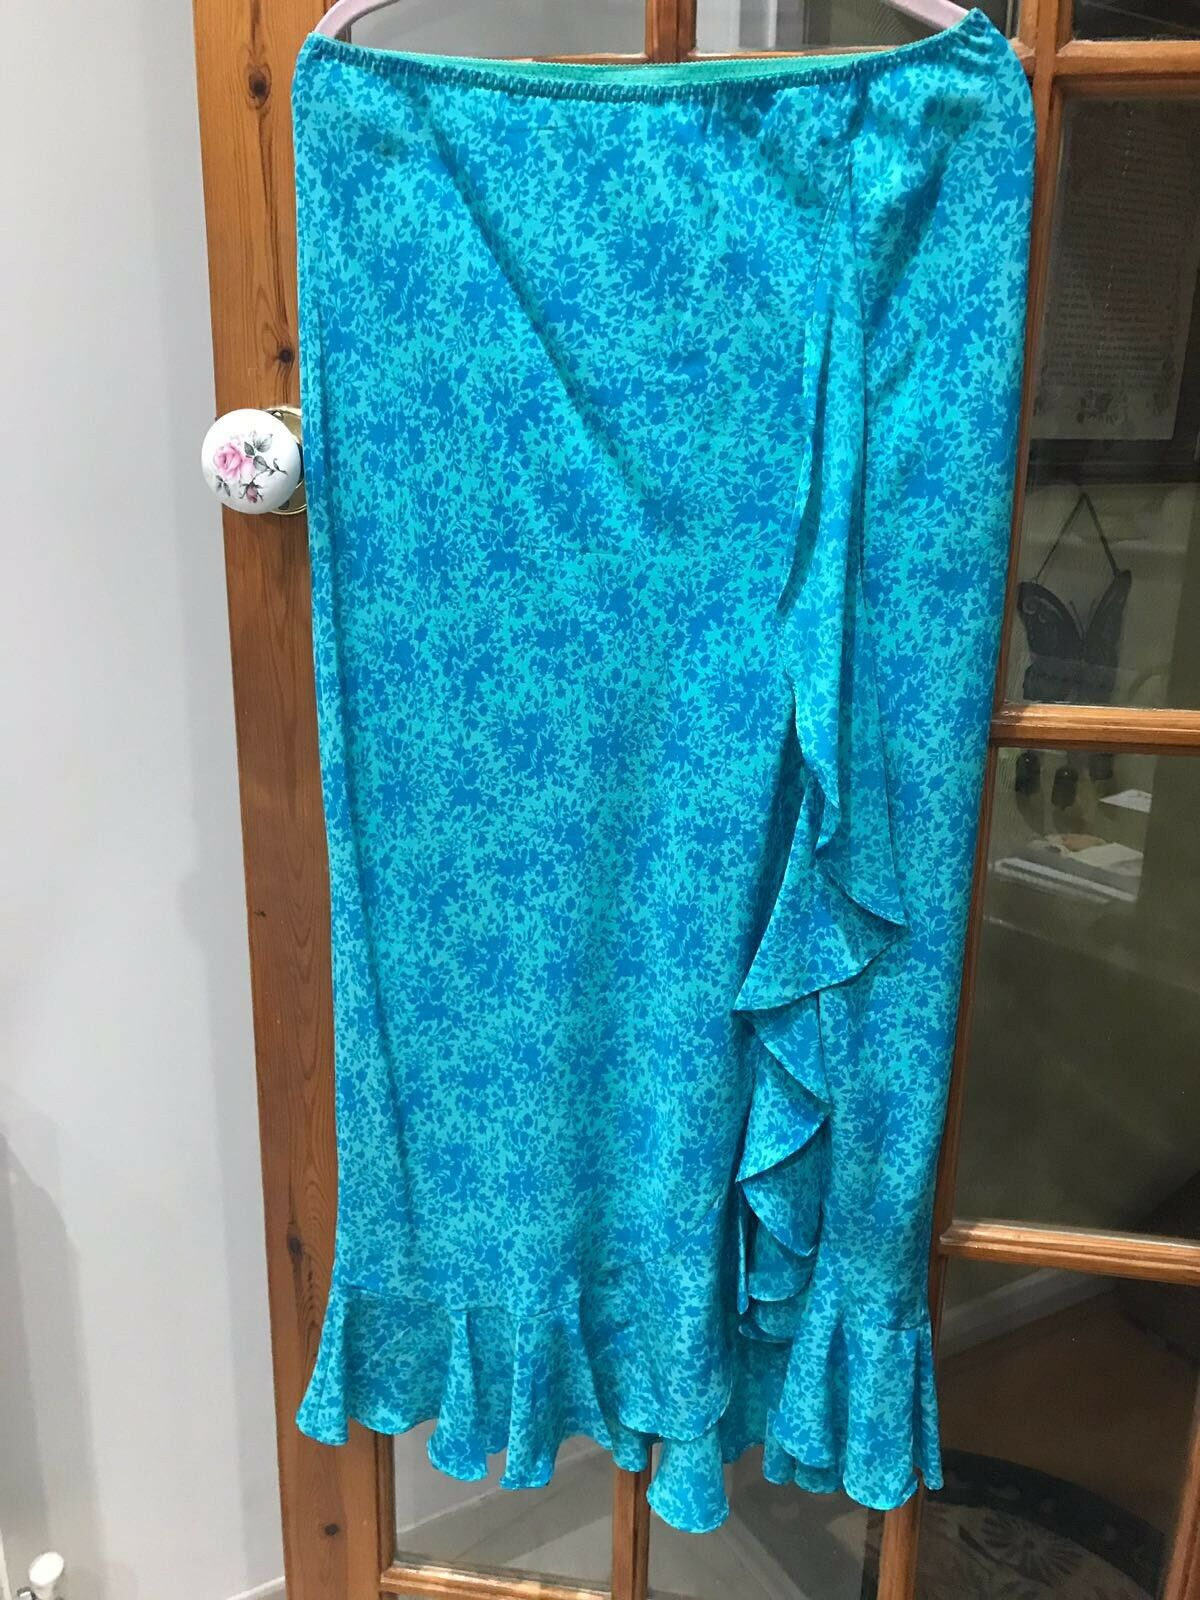 Monsoon Floral Turquoise Waterfall Skirt With Side Slit, Size 12